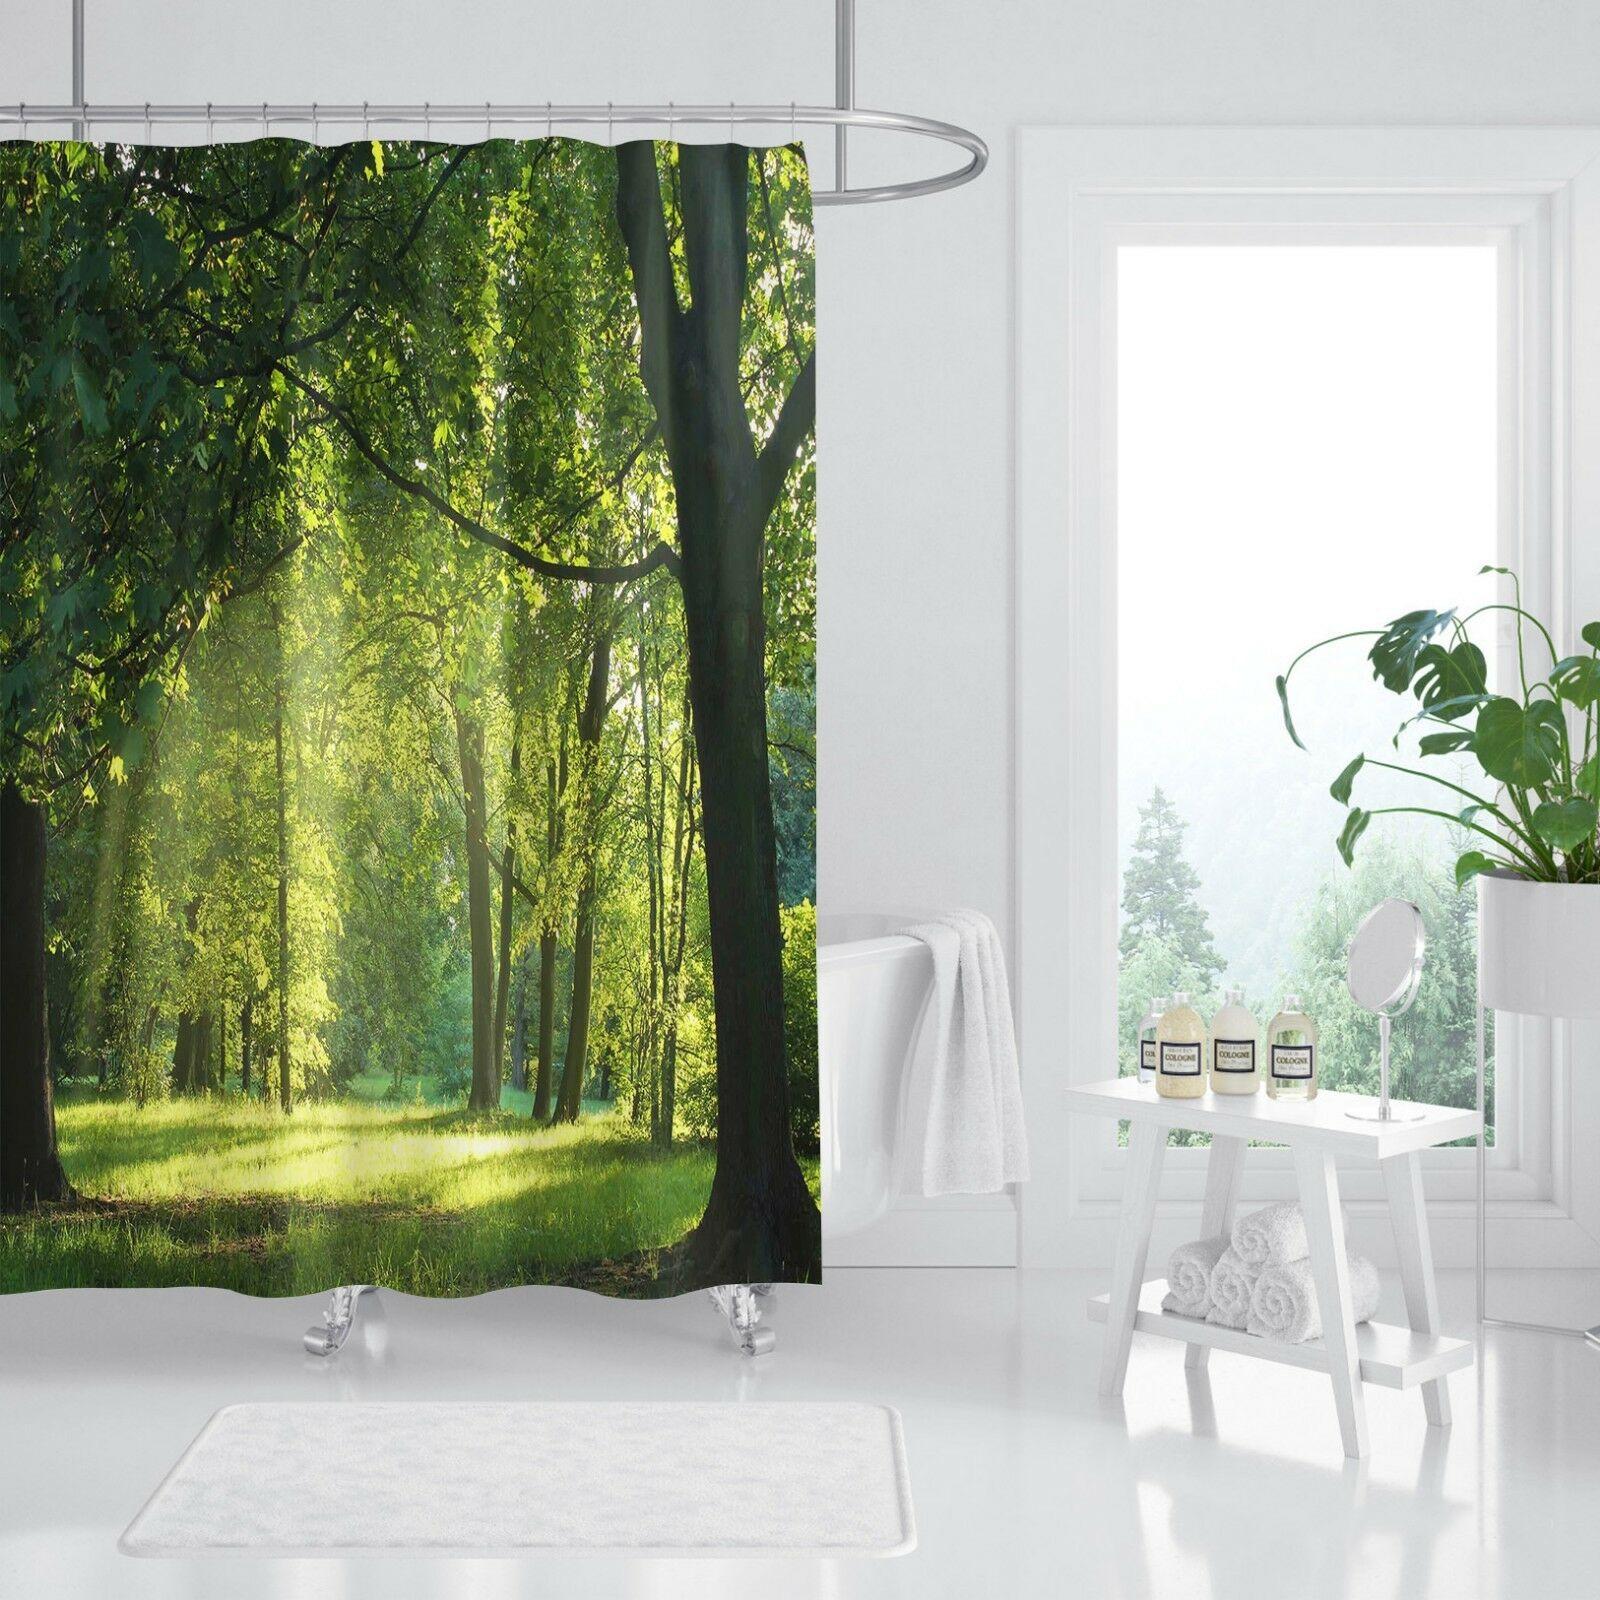 3D Sunshine Woods 89 Rideau de Douche Imperméable Fibre Salle De Bain Windows Toilette